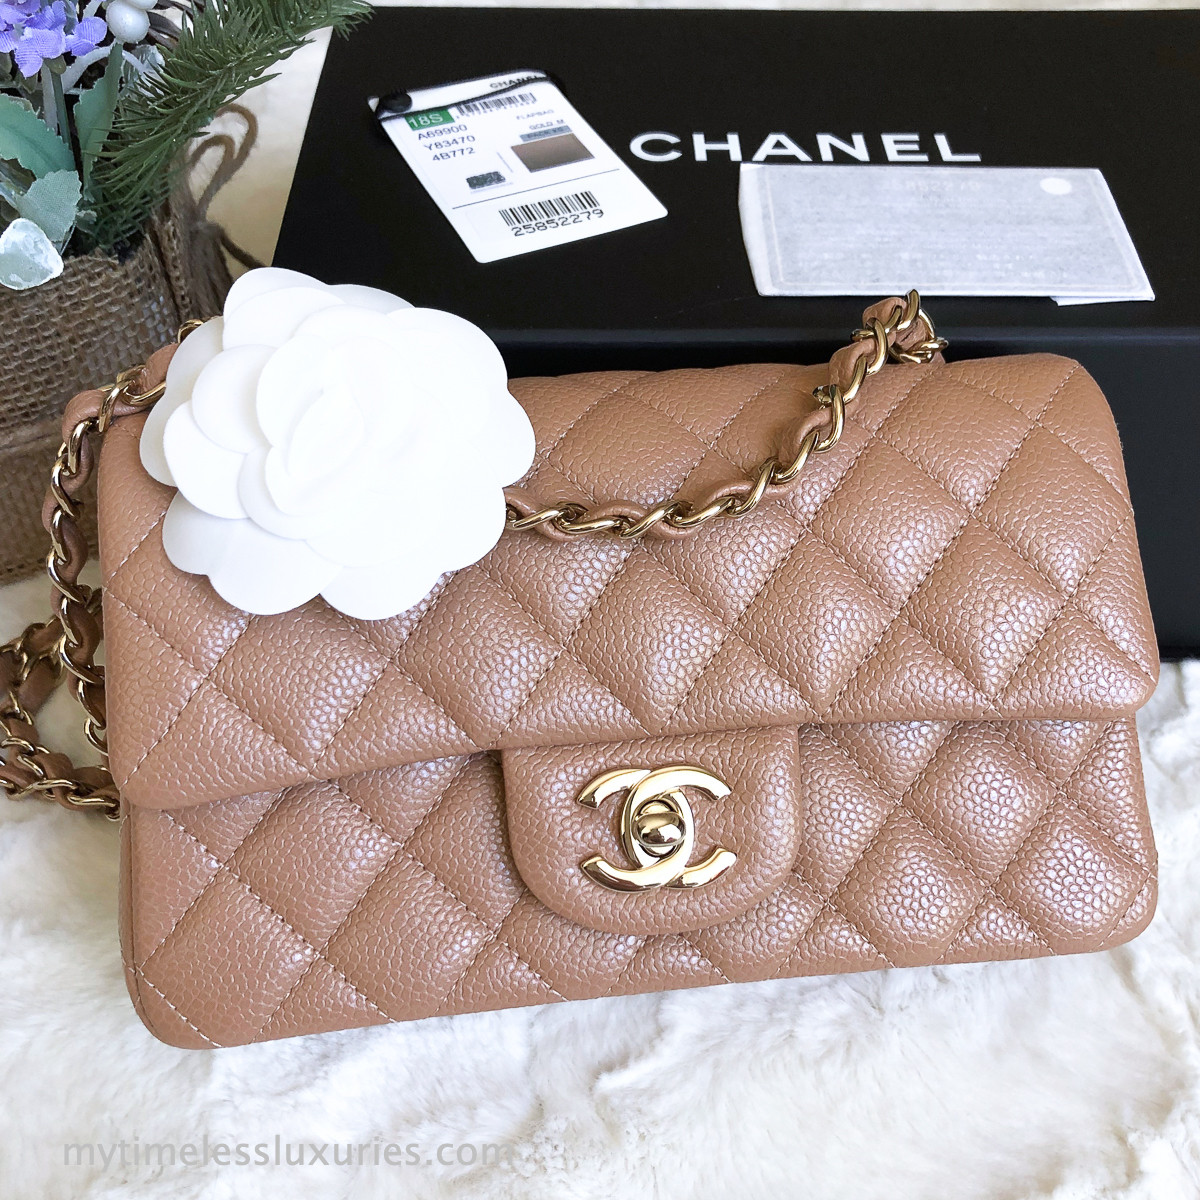 041a8a587967 CHANEL 18S Pearly Beige Caviar Rectangle Mini Light Gold Hw ...